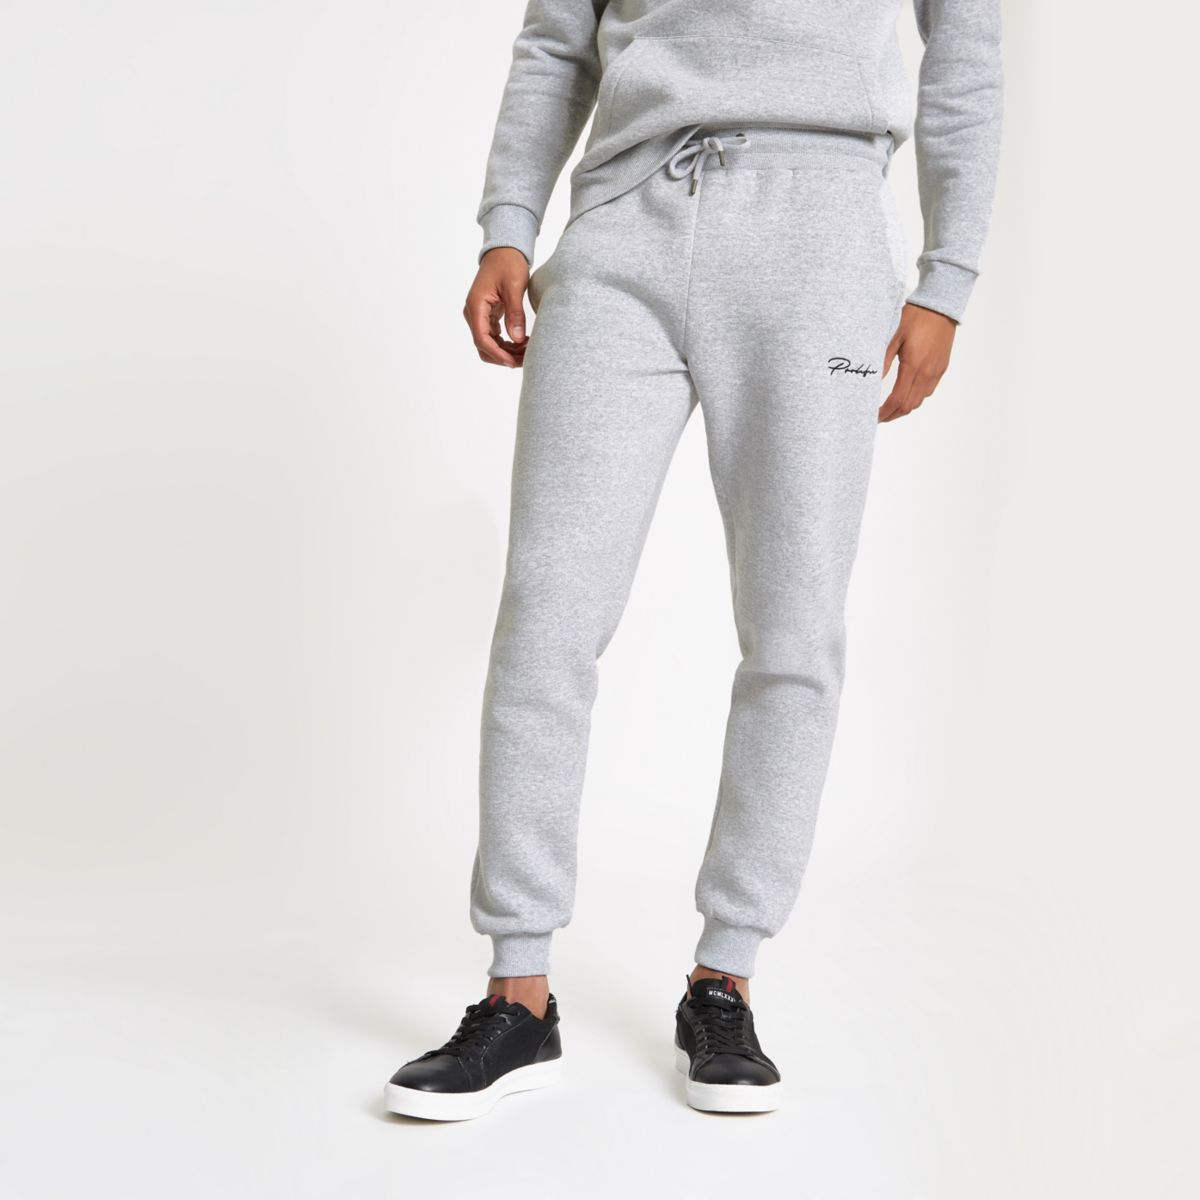 Grey muscle fit embroidered joggers